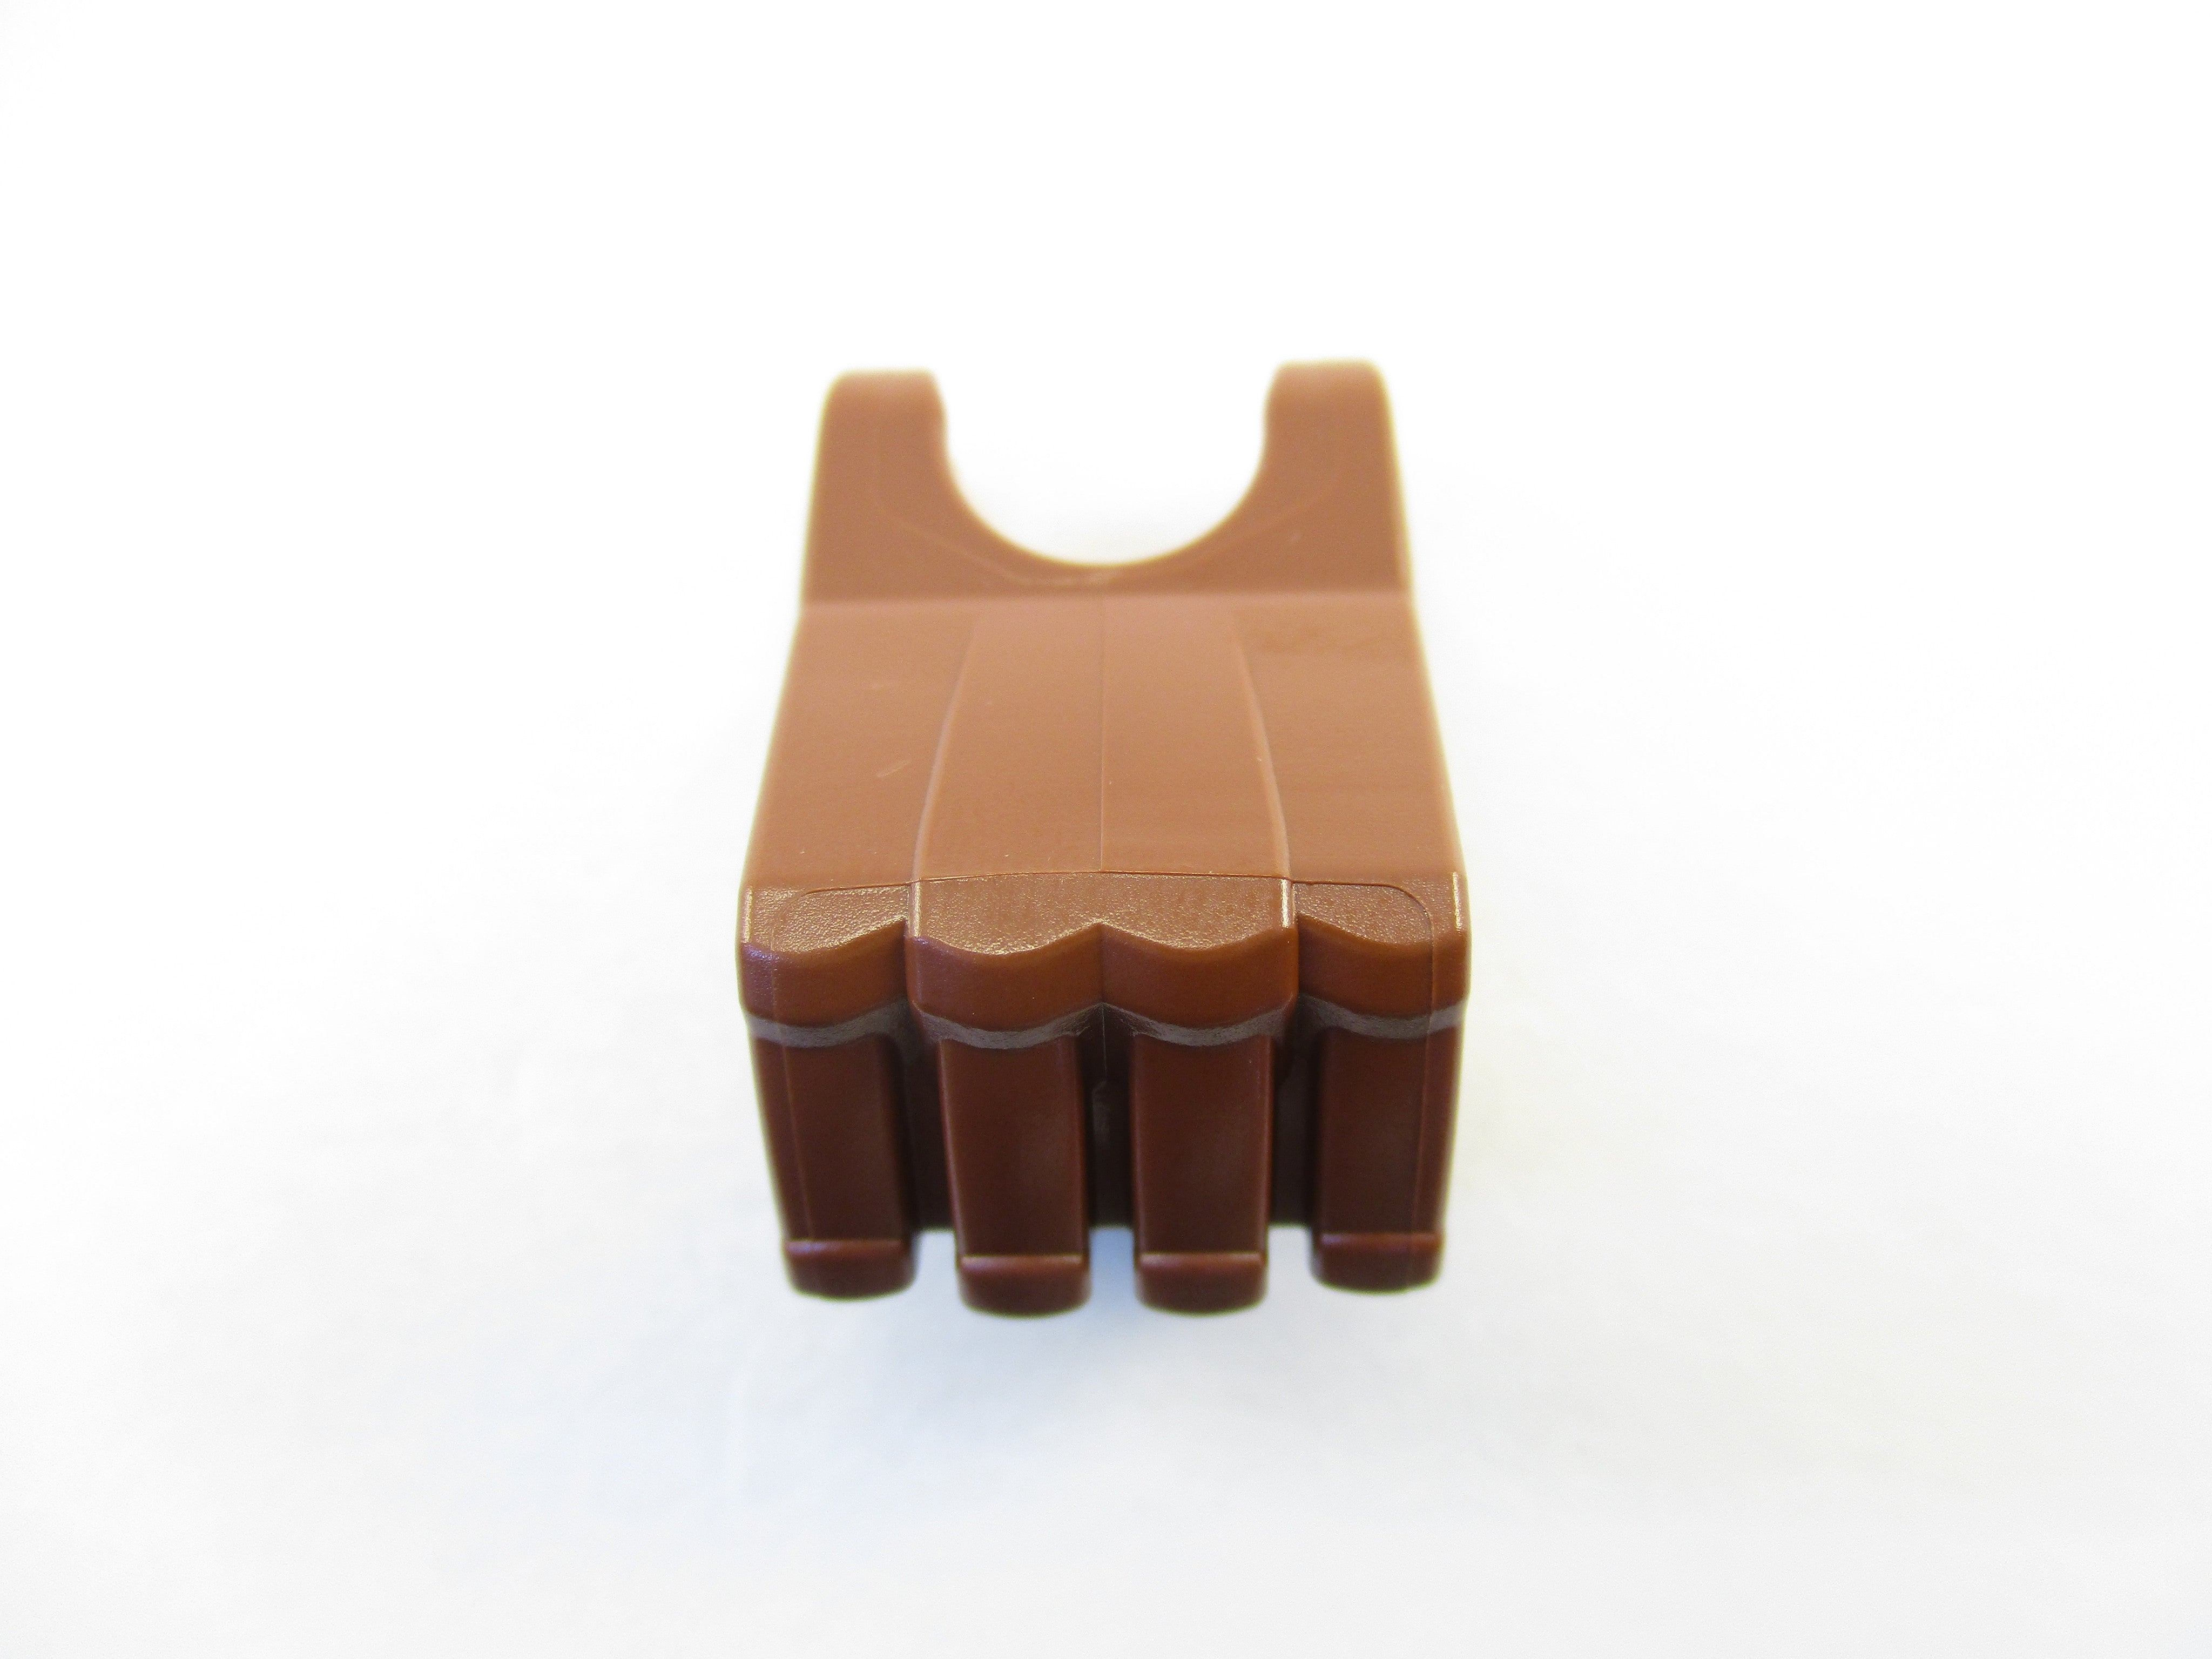 LEGO Reddish Brown Hero Factory Fist with Axle Hole 1 Part Piece 93575